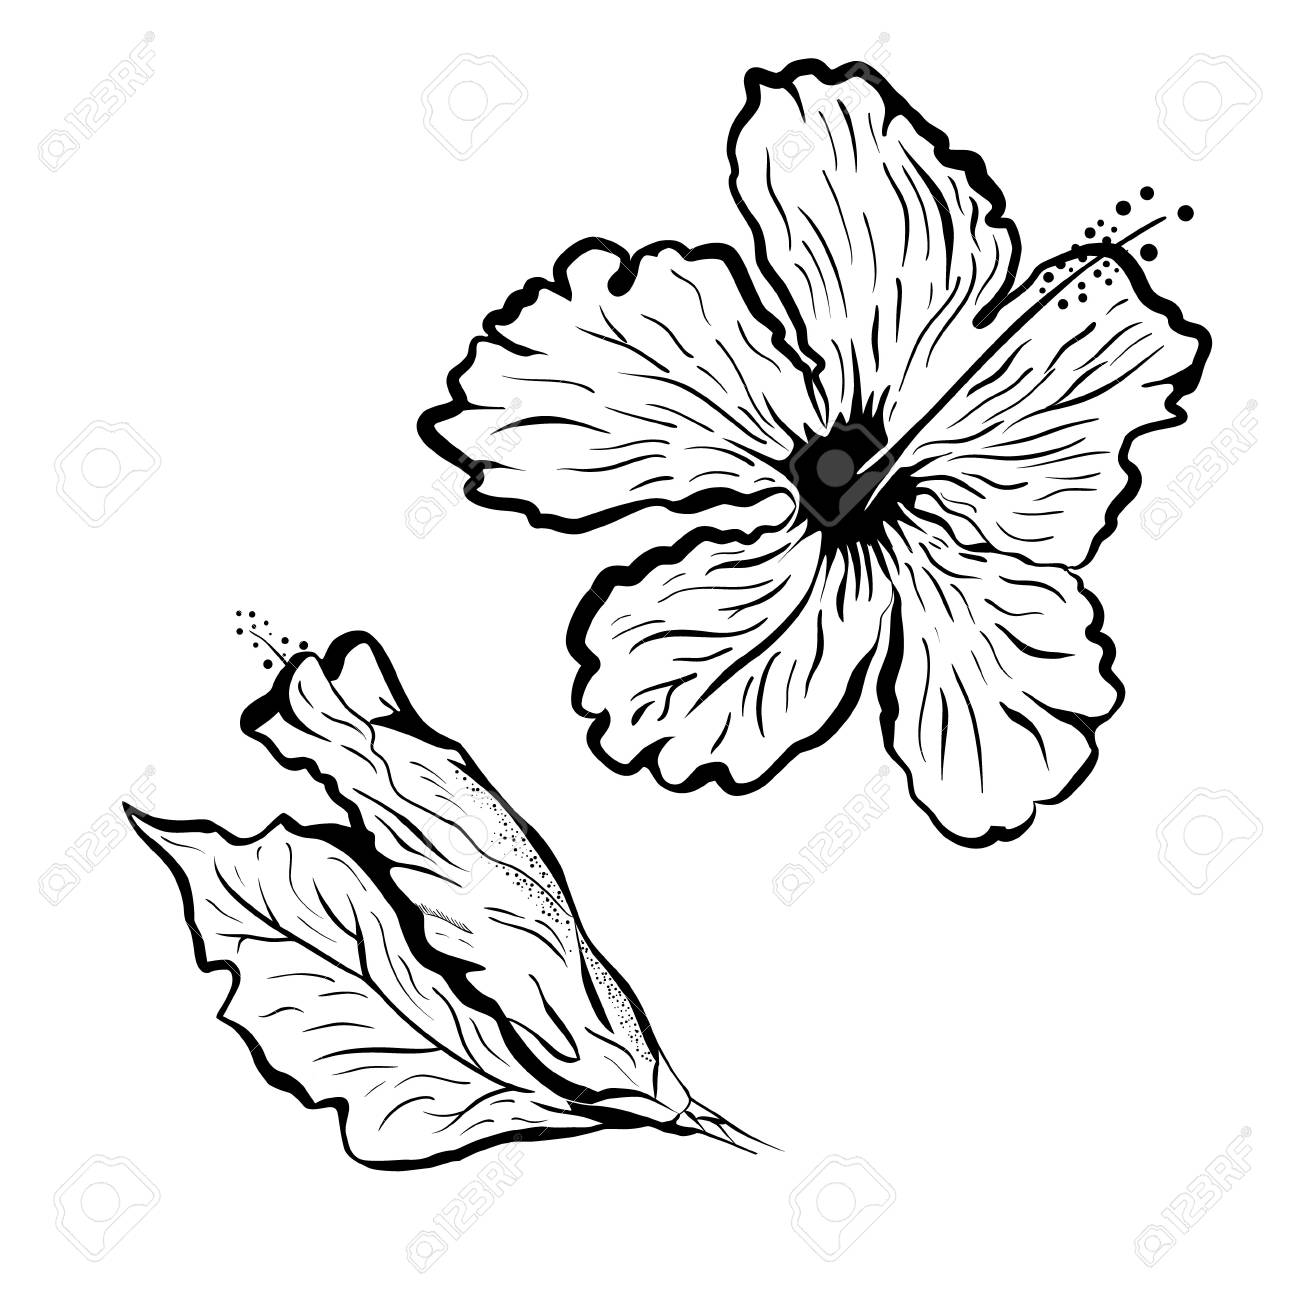 Hibiscus Flower Outline Free Download Best Hibiscus Flower Outline